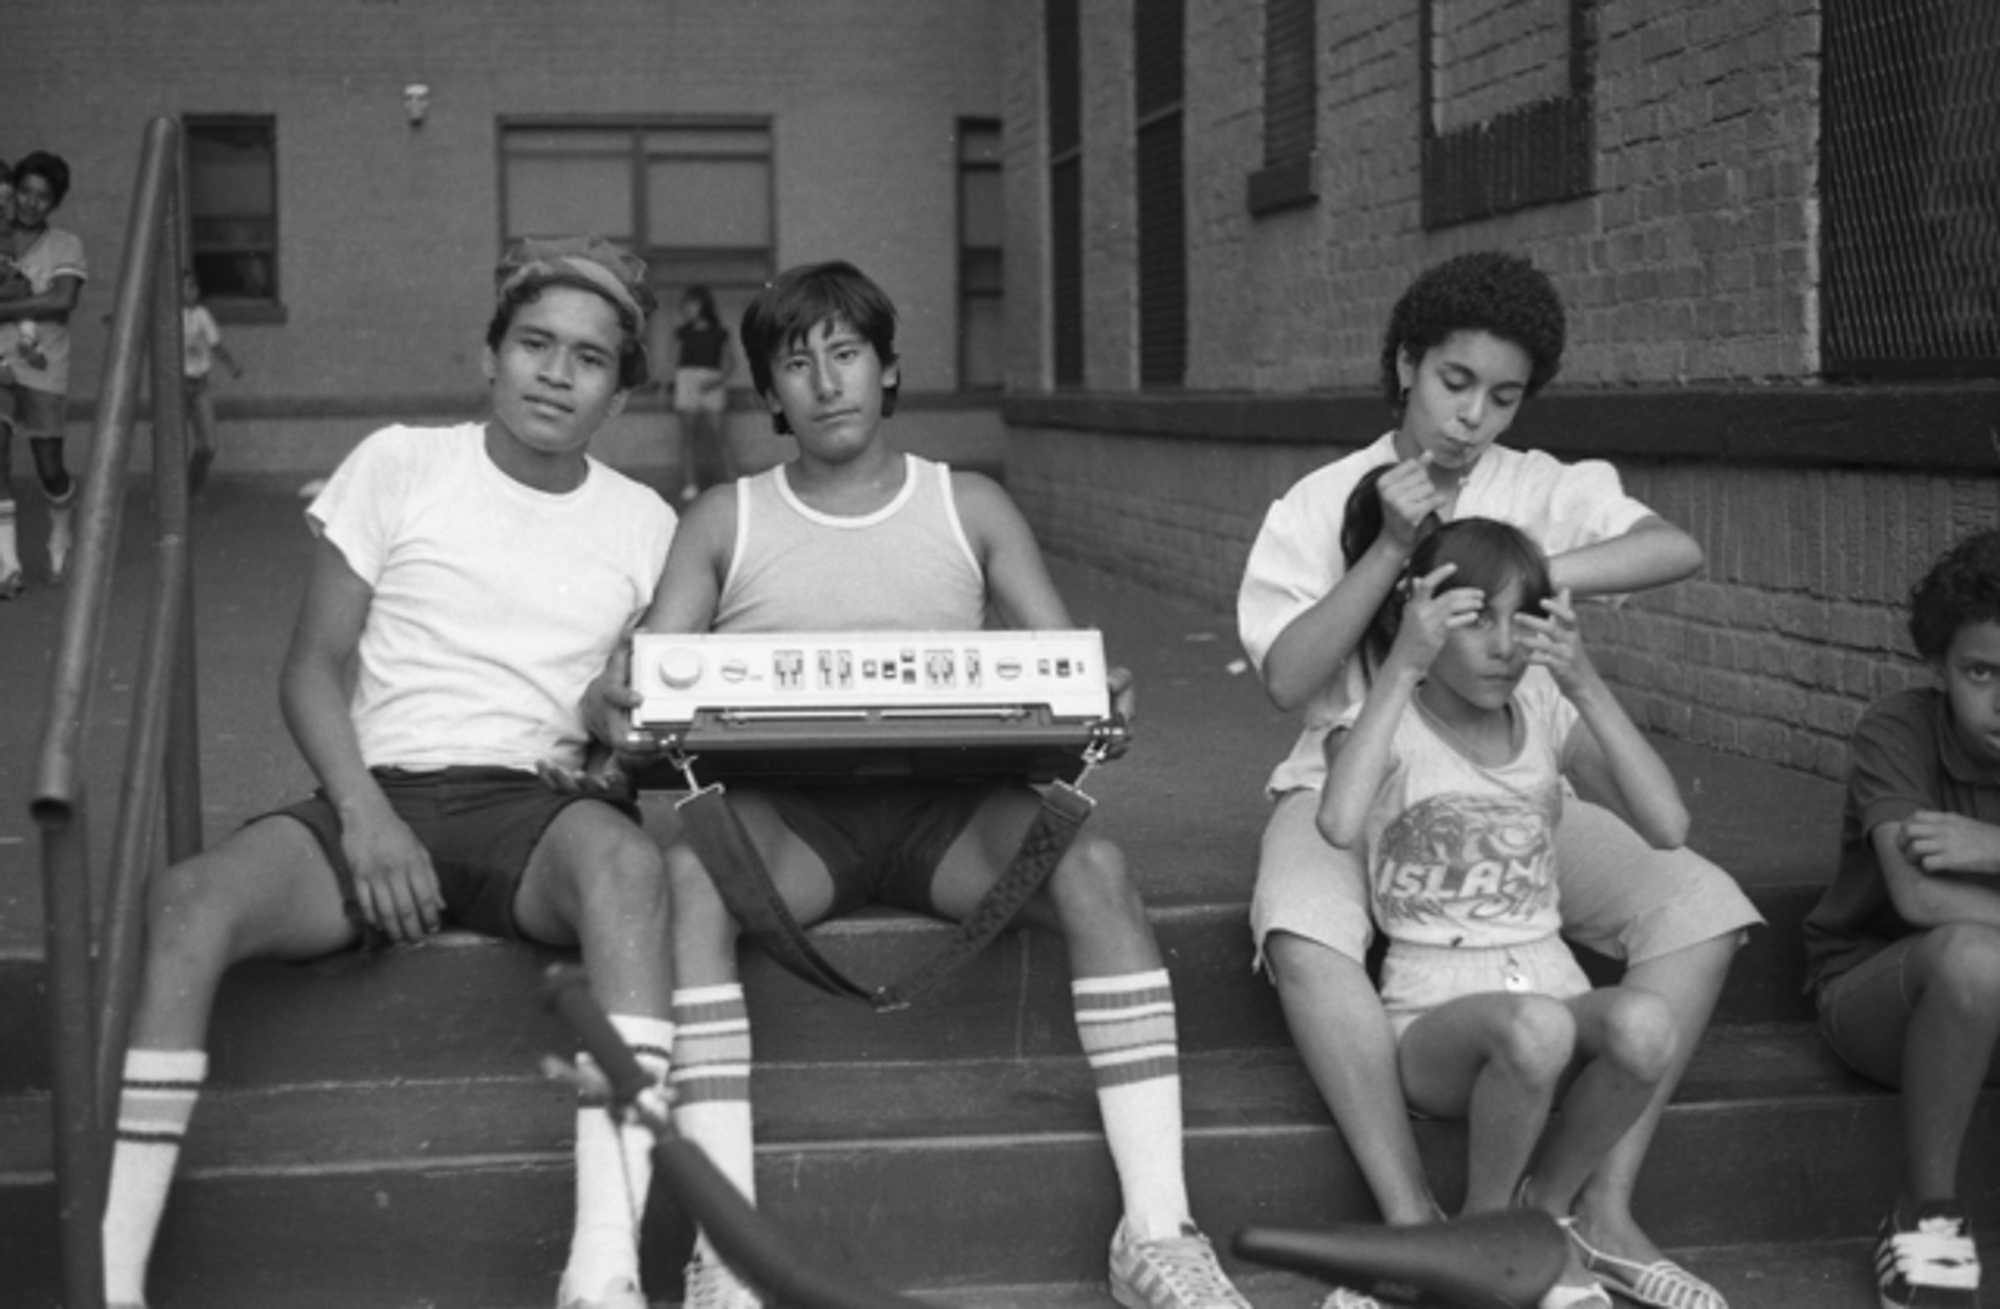 Hanging out on the stoop, South Bronx, 1983.  Photo by Ricky Flores